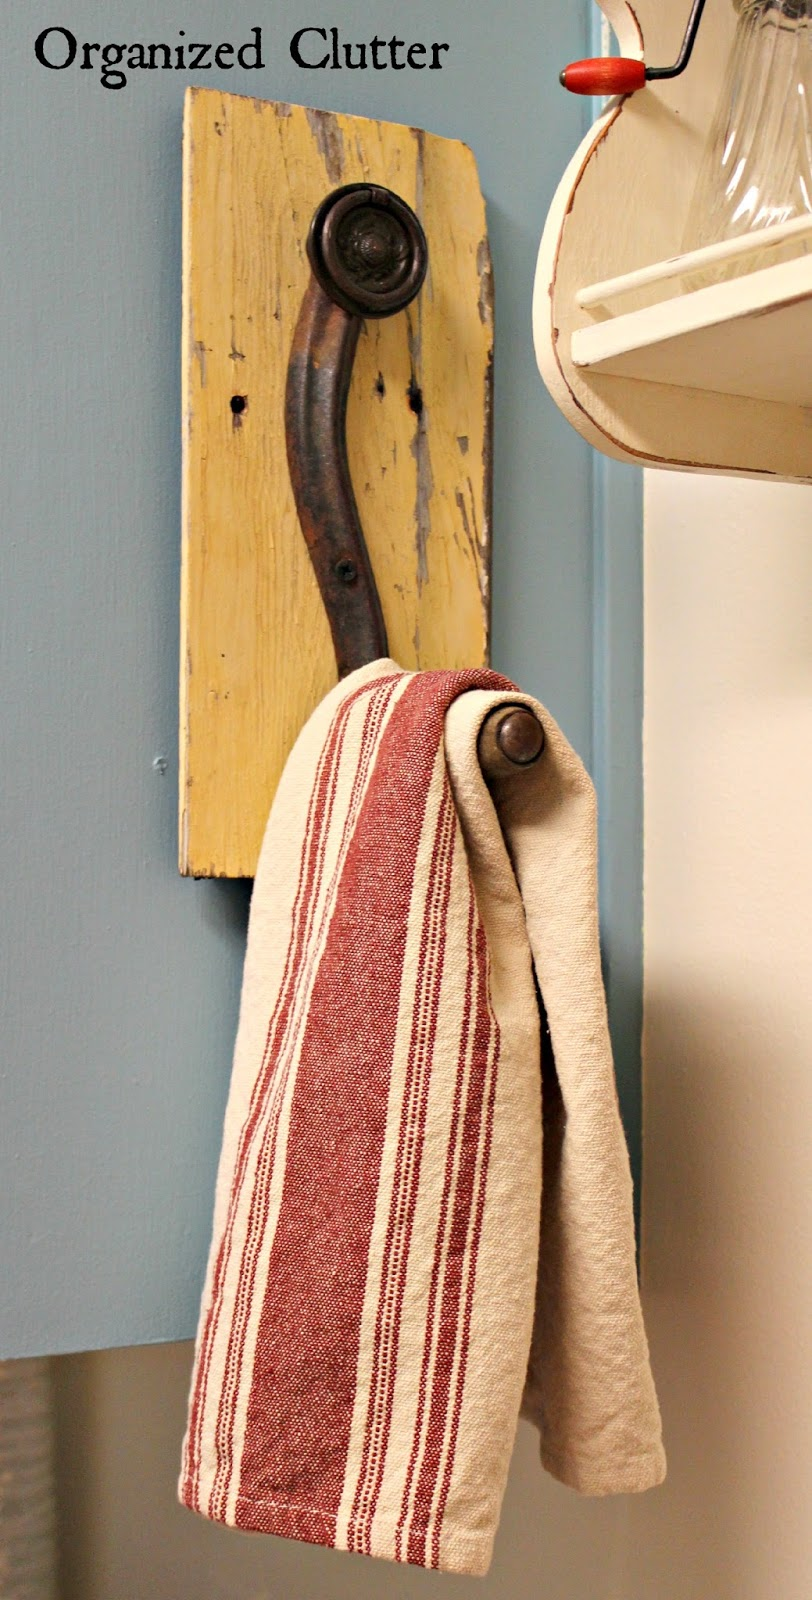 Repurposed Crank Handle Towel Hook www.organizedclutterqueen.blogspot.com